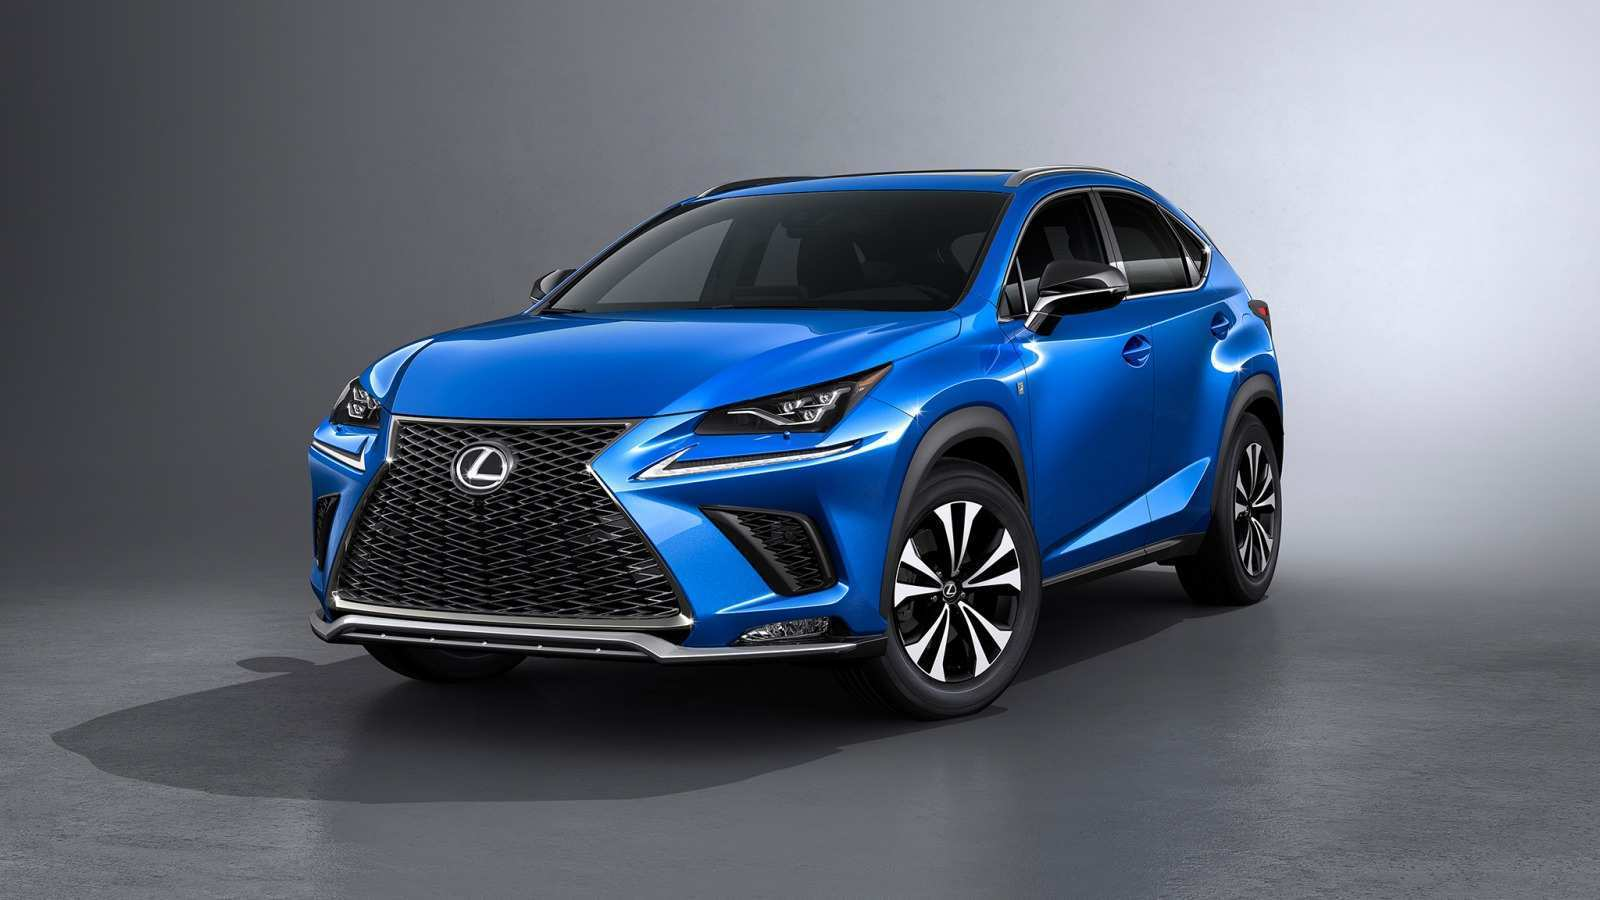 81 Best Review When Lexus 2019 Come Out New Review for When Lexus 2019 Come Out